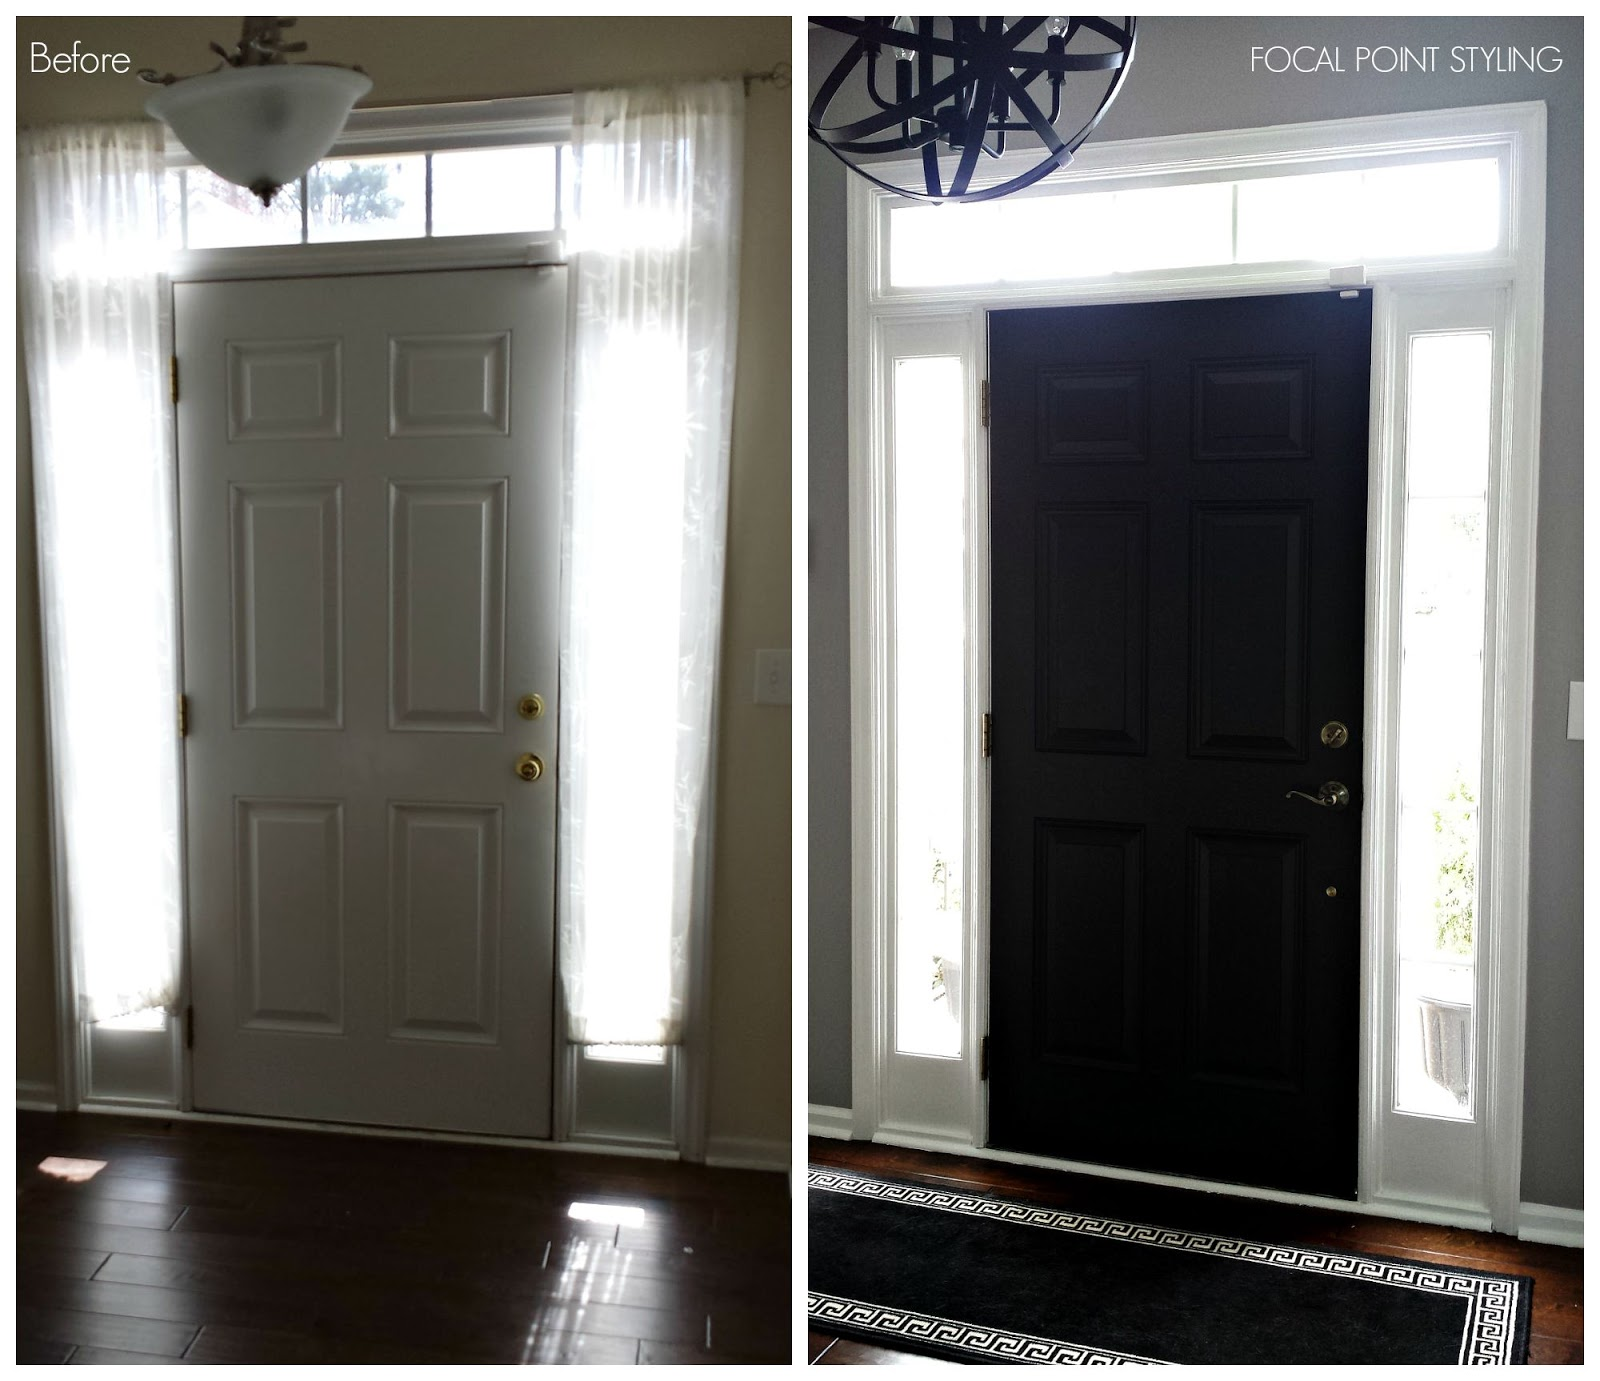 Lovely FOCAL POINT STYLING: How To Paint Interior Doors Black U0026 Update Brass  Hardware Design